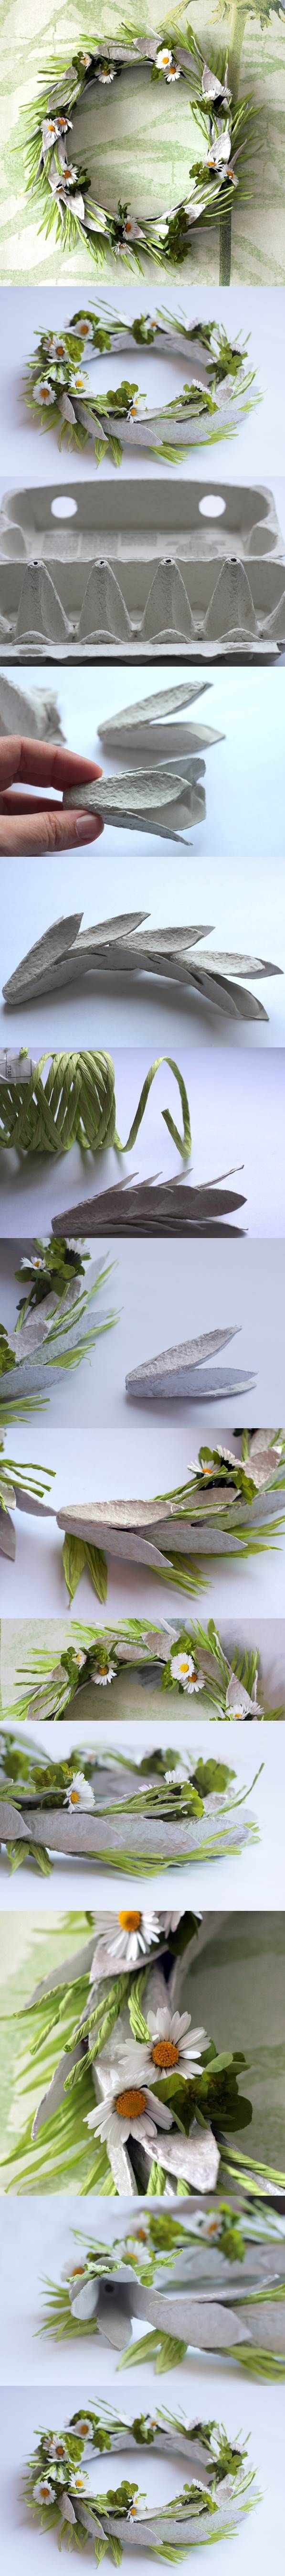 Velikonoční věnec z plata od vajec          Egg Carton Craft - Easter Wreath | iCreativeIdeas.com LIKE Us on Facebook ==> https://www.facebook.com/icreativeideas